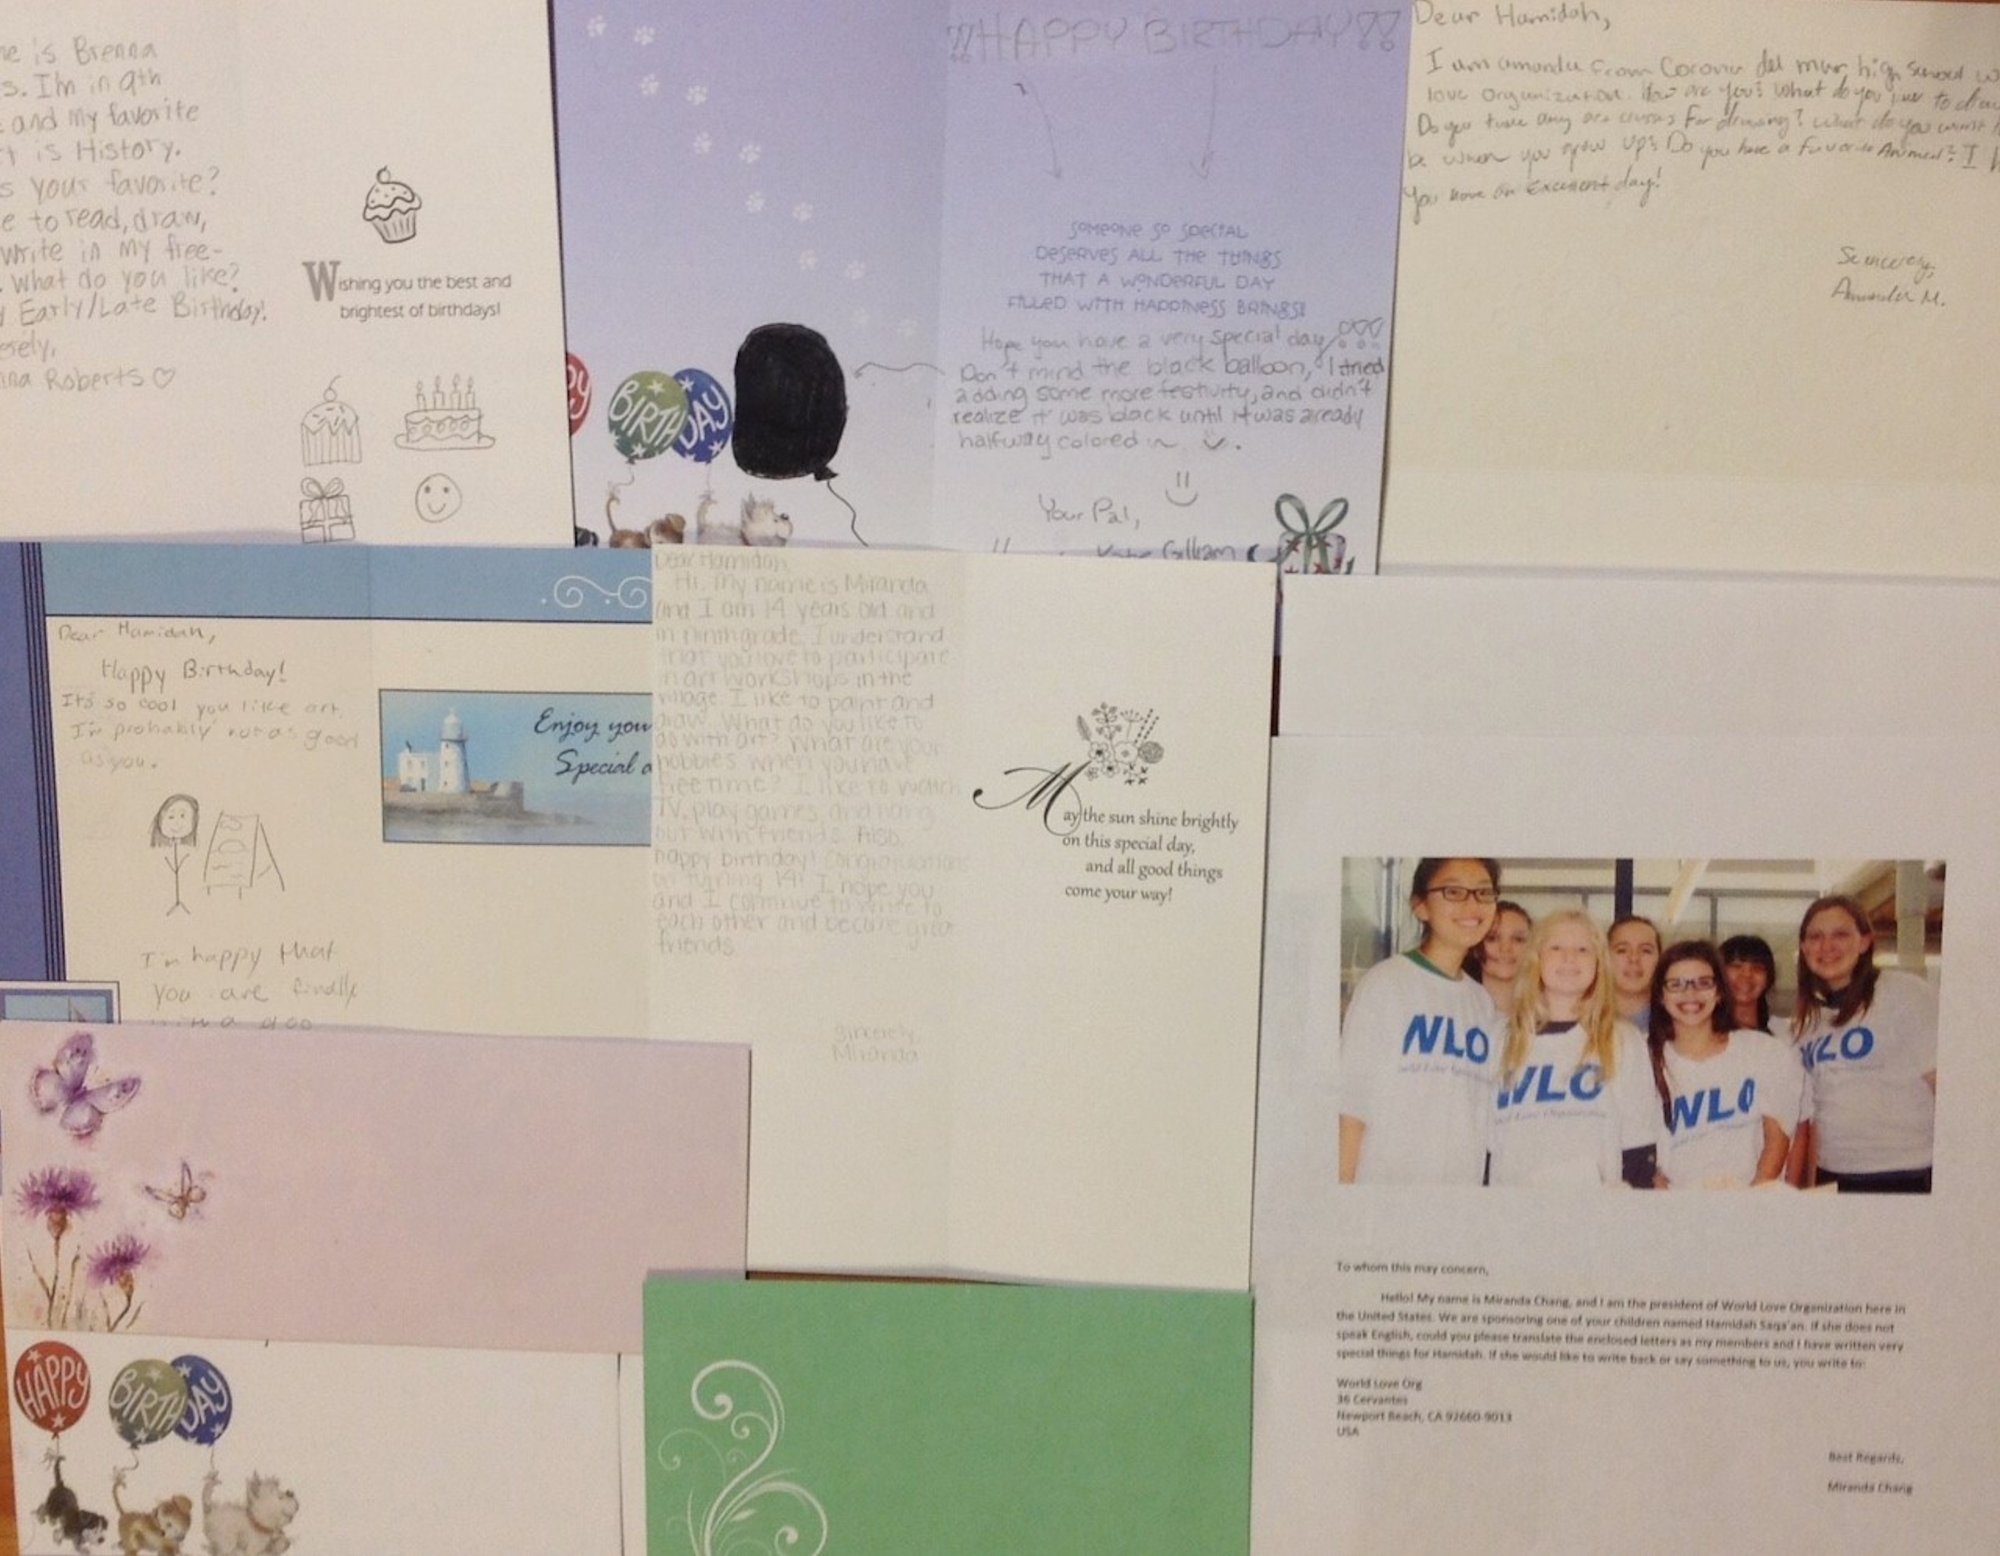 Birthday Letters to the Syrian girl along with a photo of WLO members